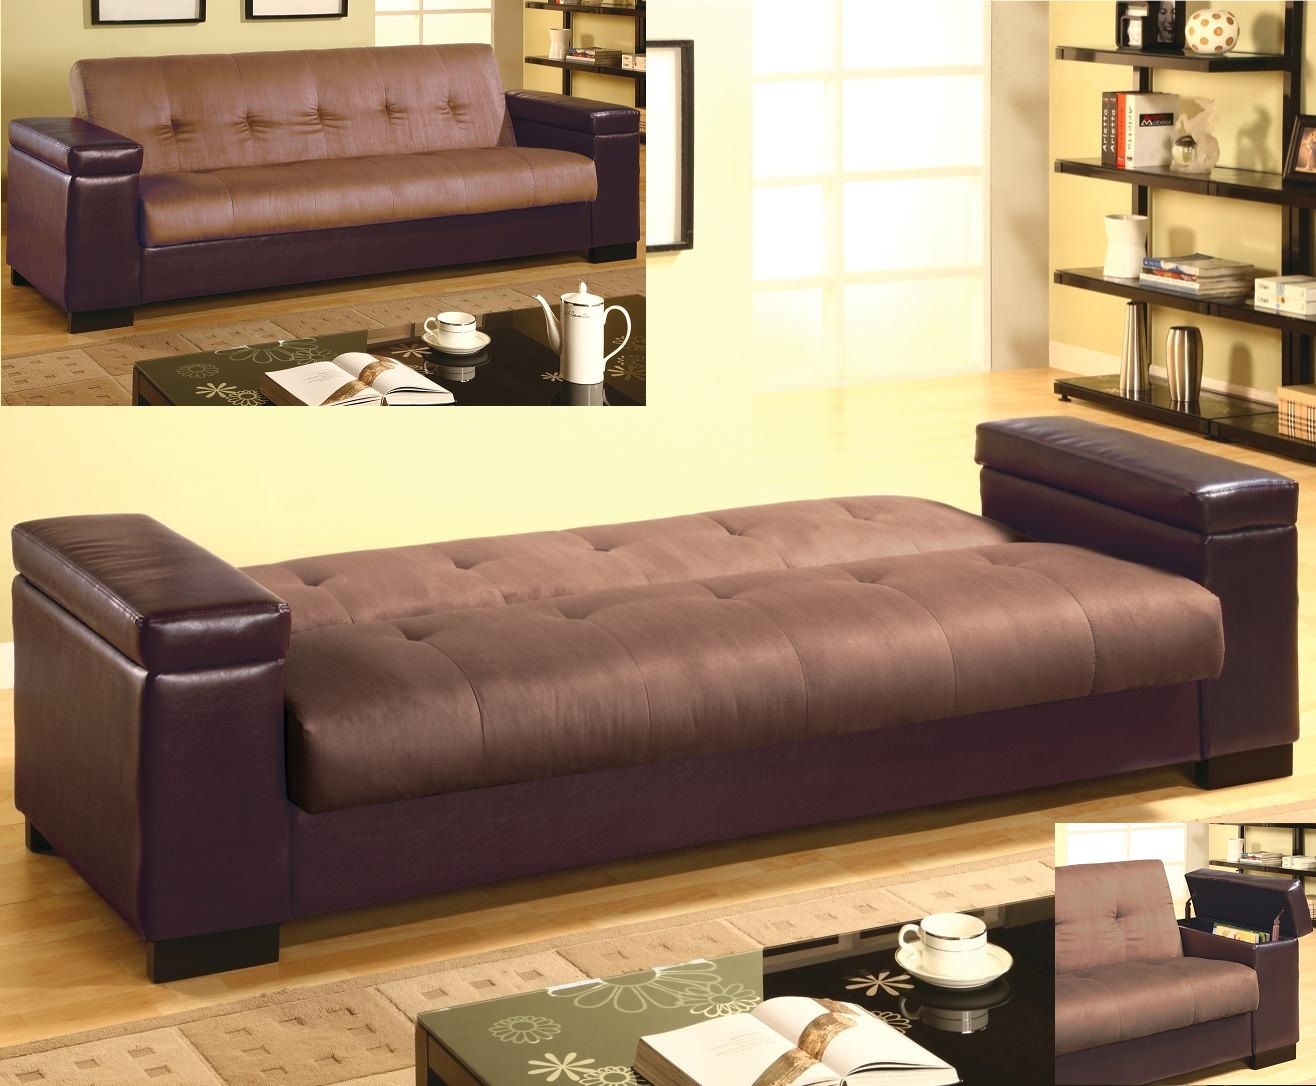 Trend Microfiber Sofa Bed 44 With Additional Living Room Sofa Ideas with Microfiber Sofa Bed